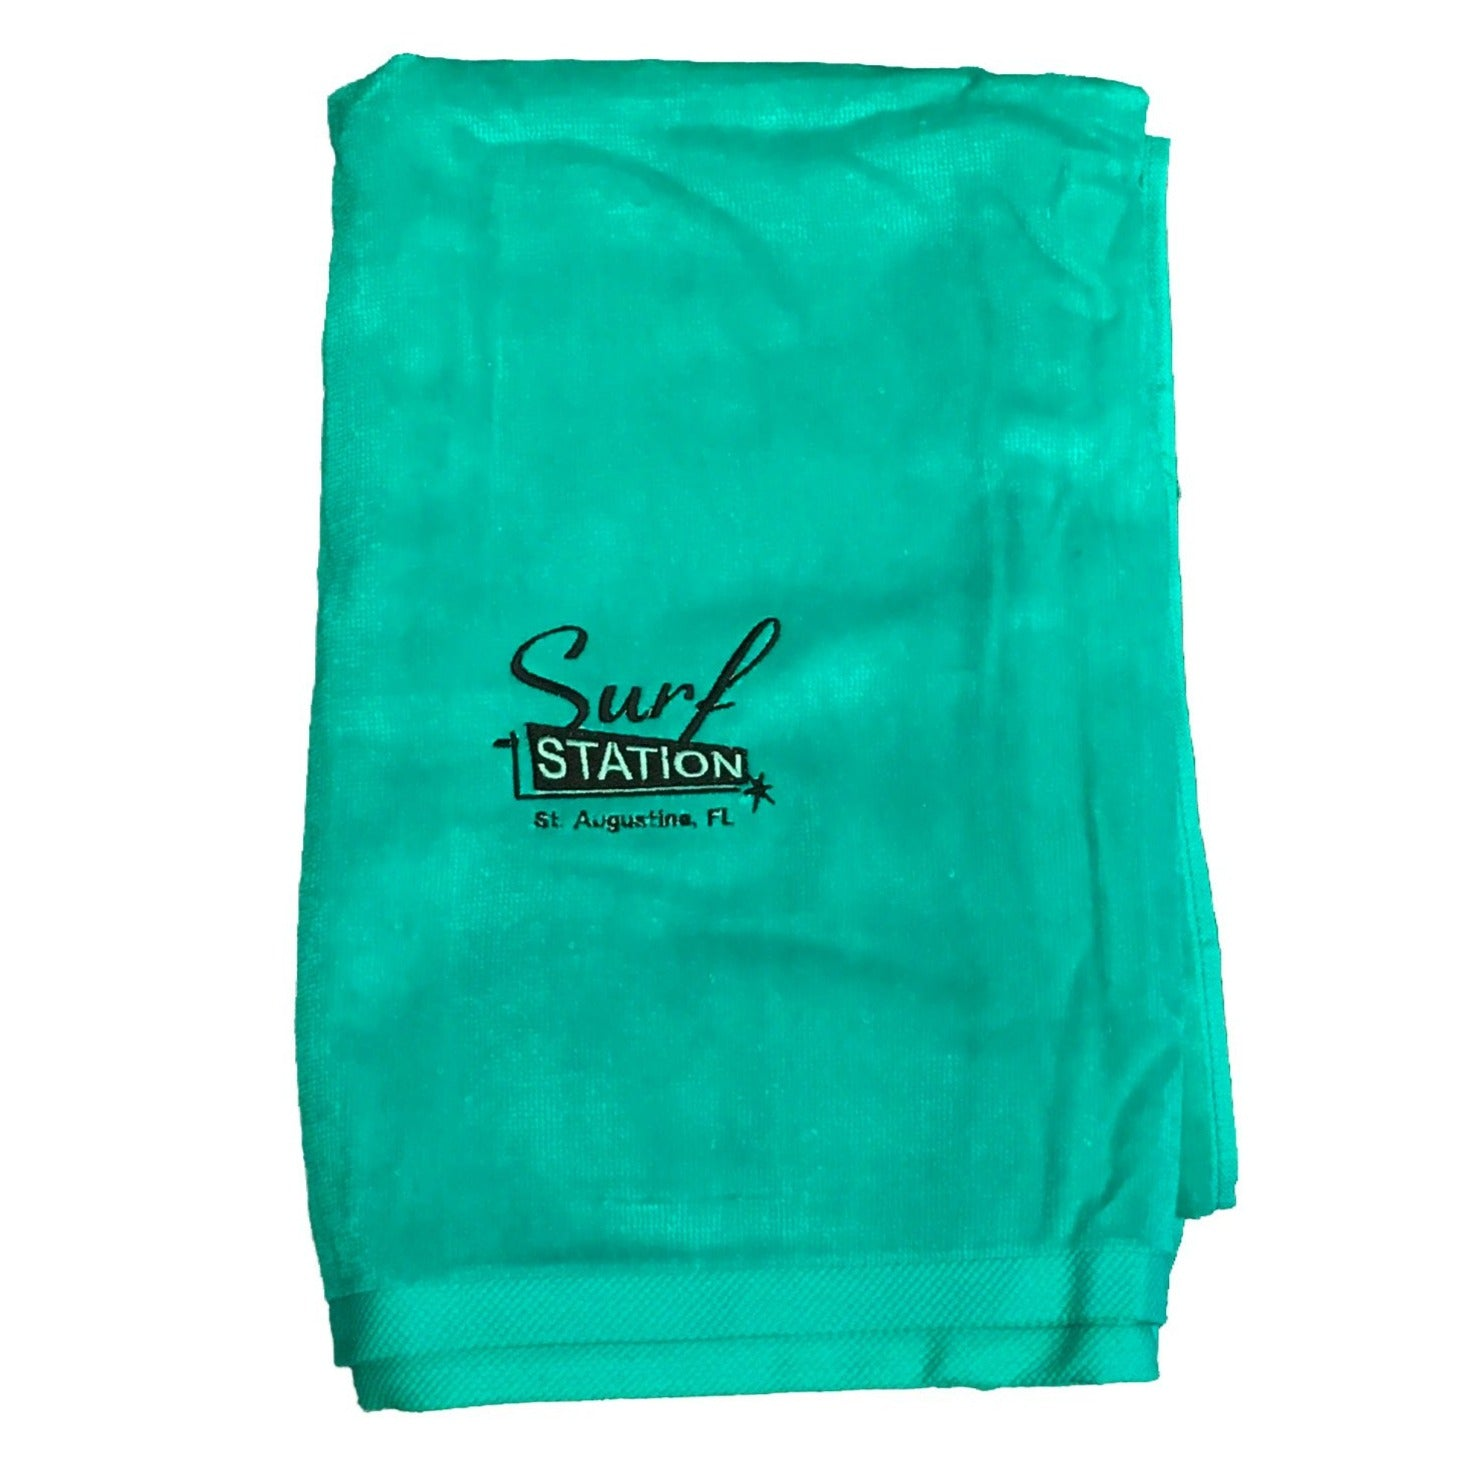 Surf Station Classic Colors Towel - Turquoise